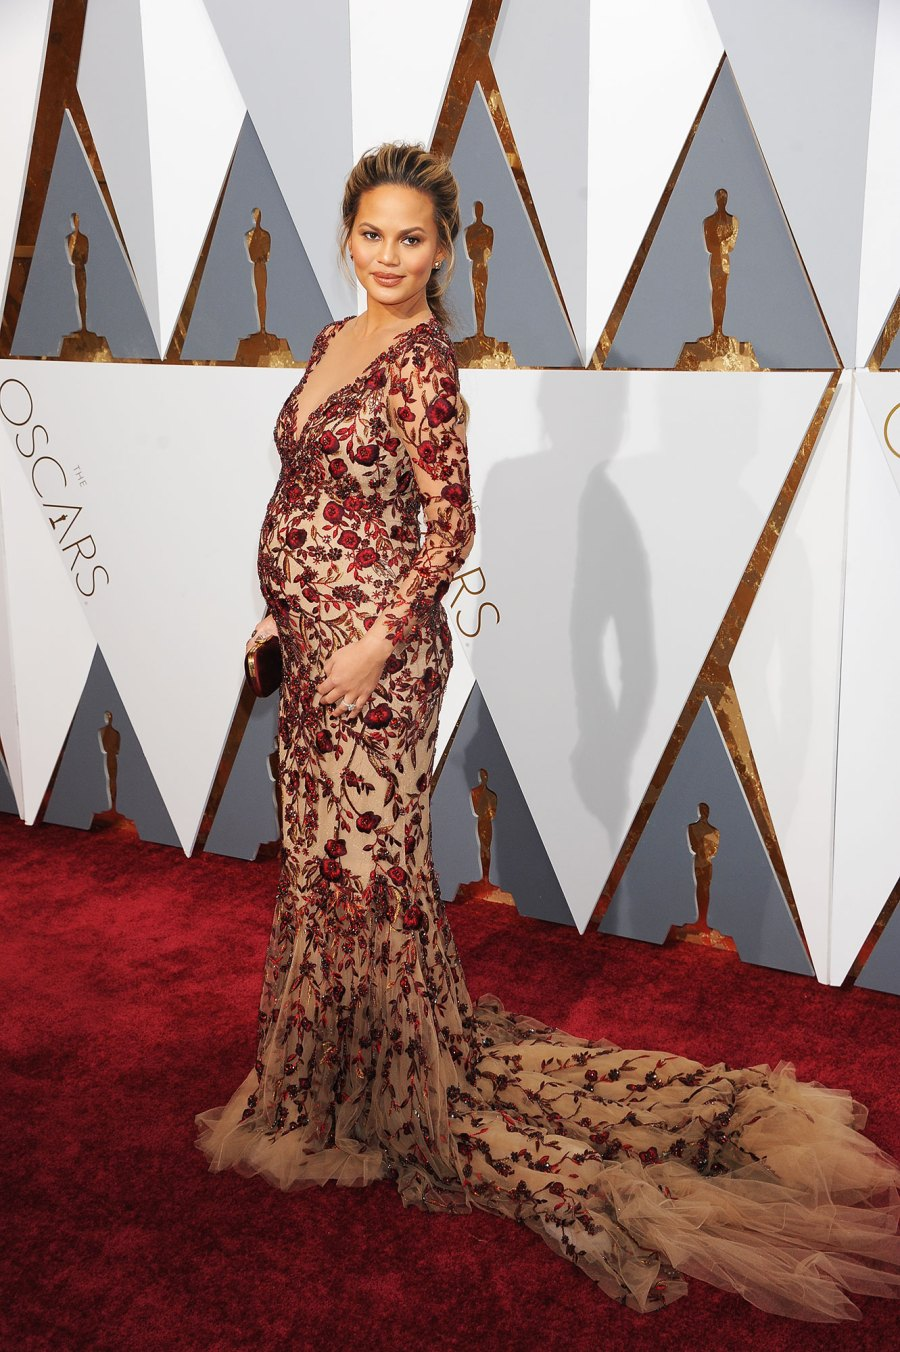 Chrissy Teigen Pregnant Celebrities Showing Off Their Baby Bumps on the Oscars Red Carpet